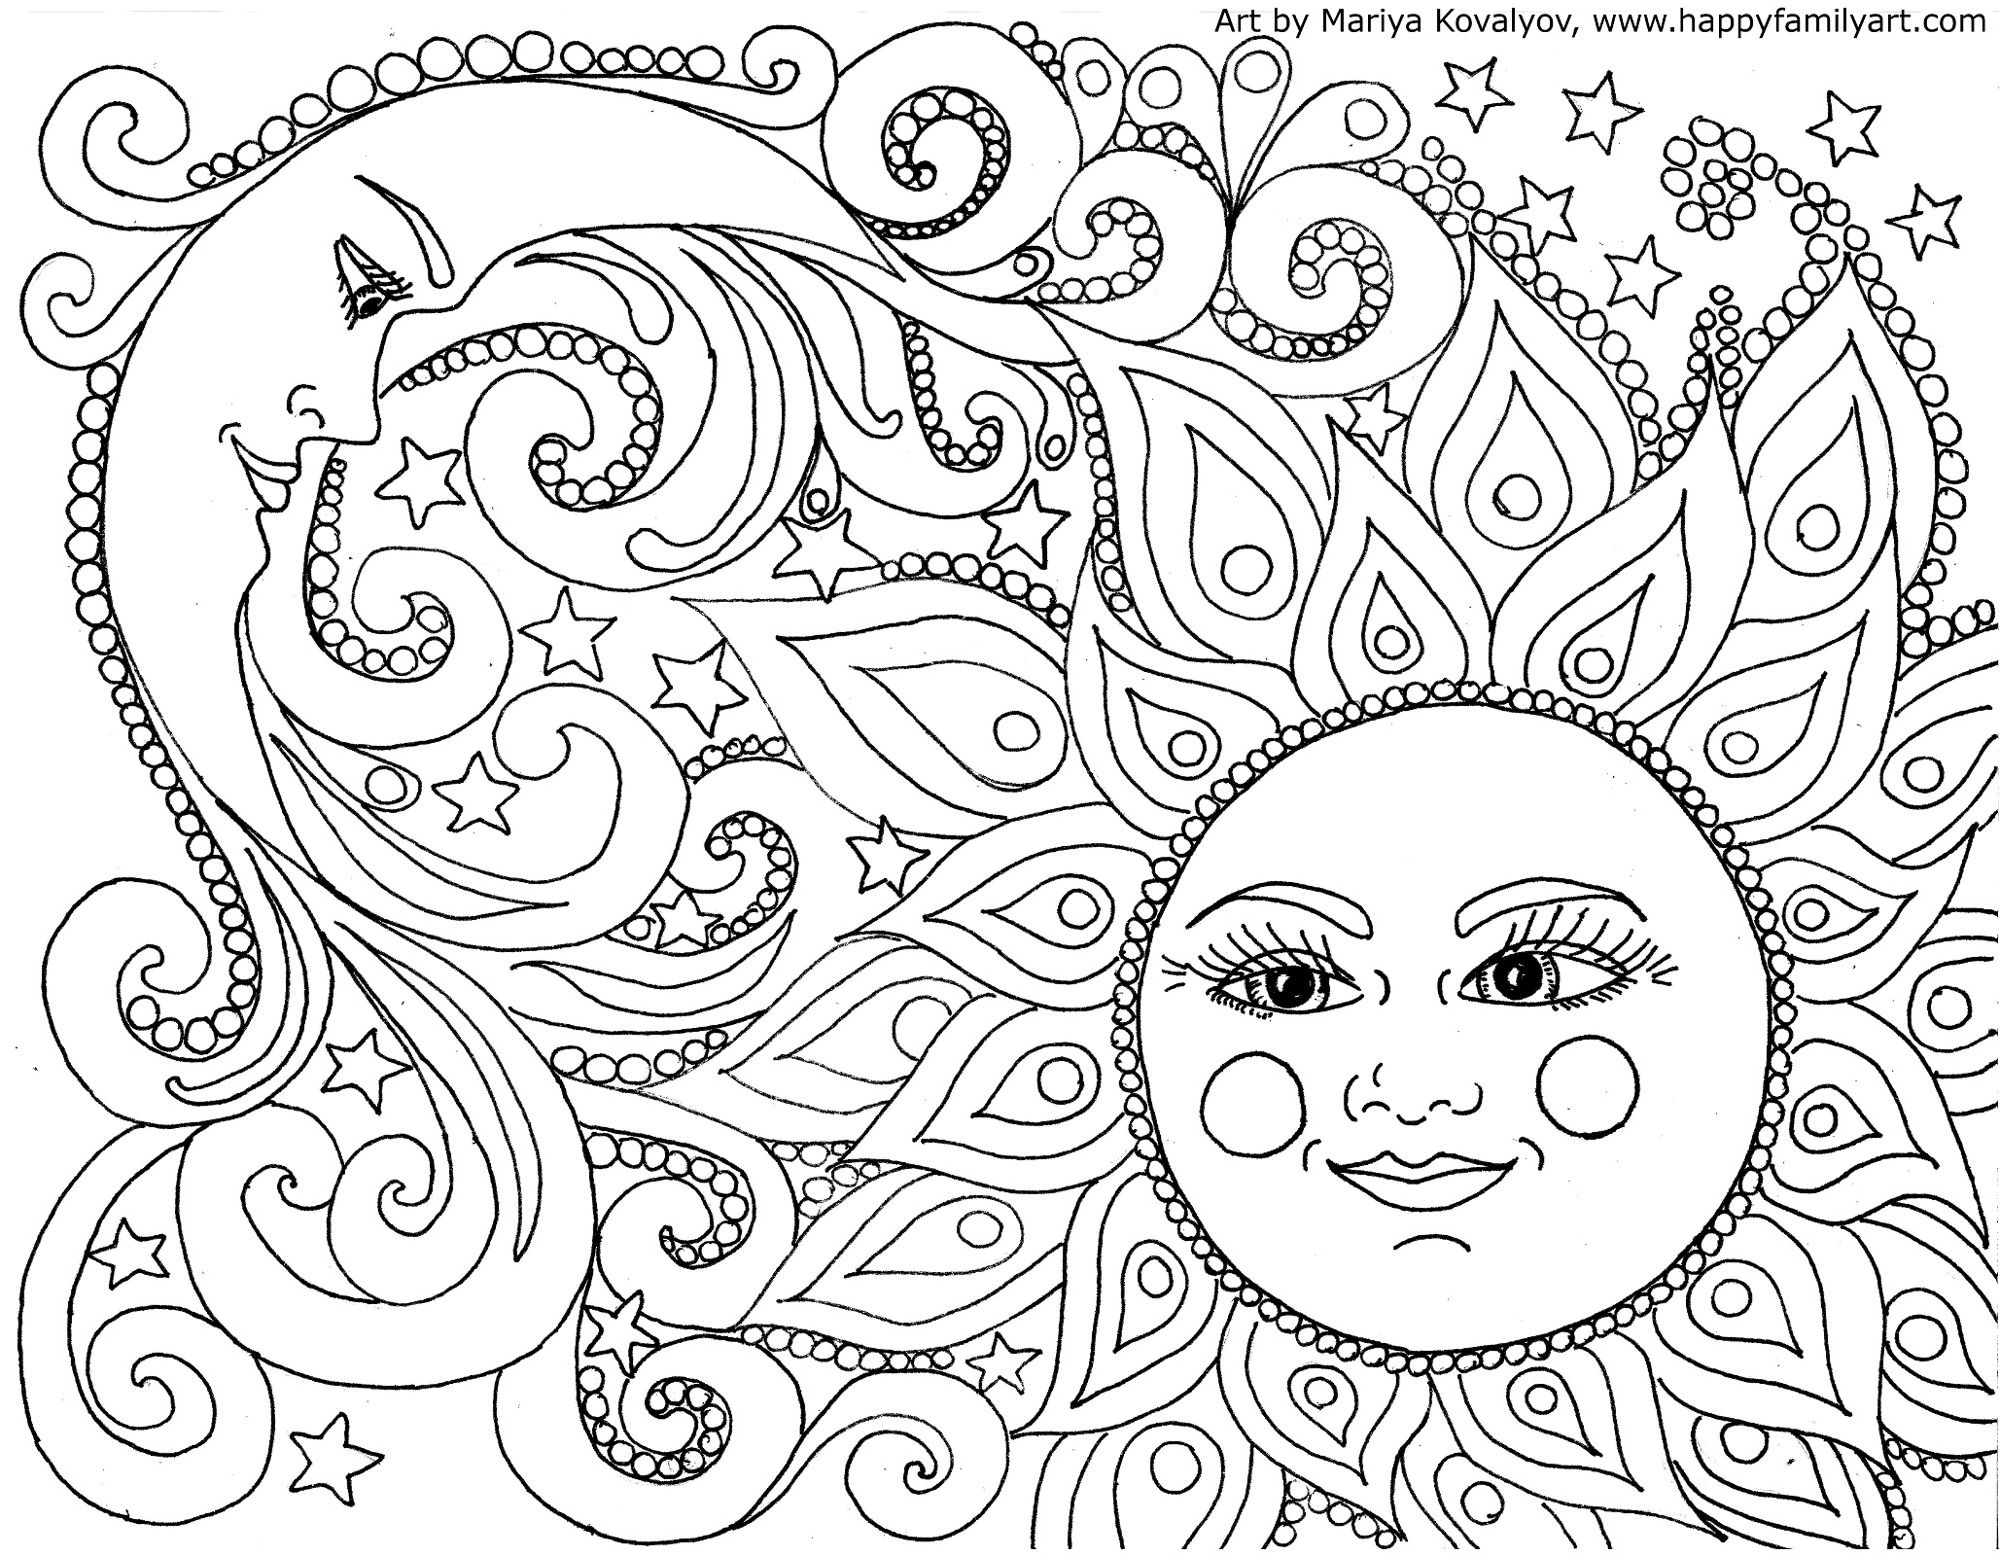 Printables Coloring Worksheets Printable 1000 ideas about adult coloring pages on pinterest i made many great fun and original color your heart out